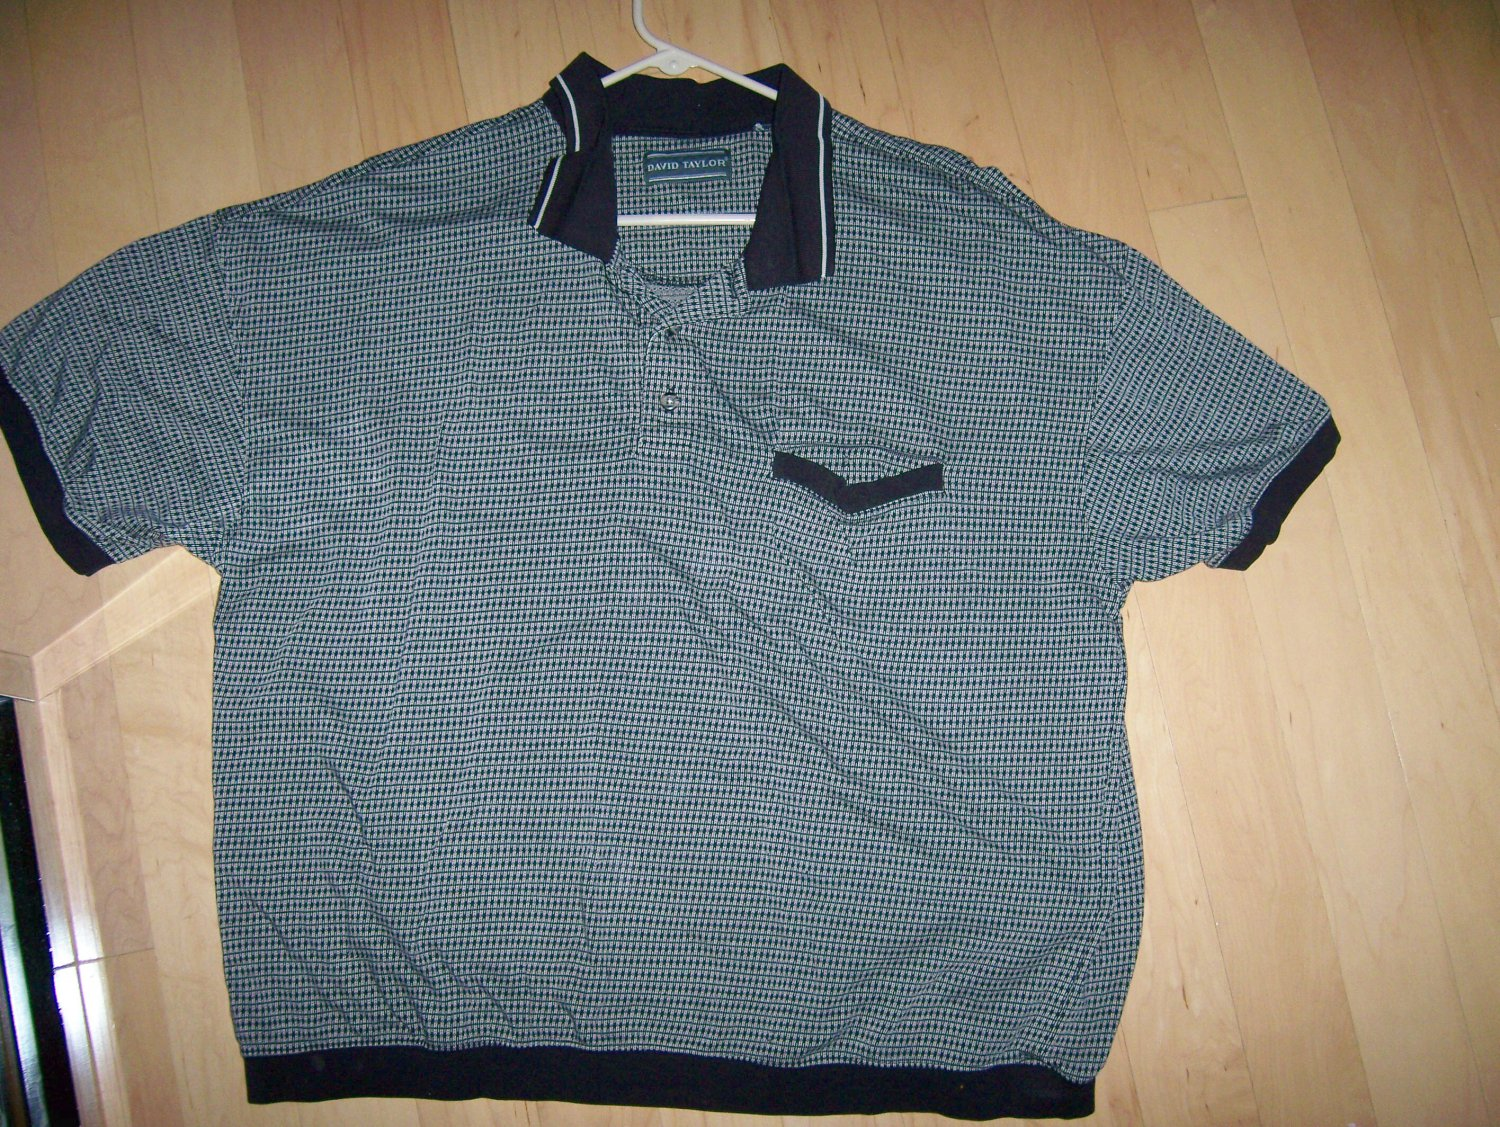 Polo Shirt Black/Tan  XXL By David Taylor  BNK1022